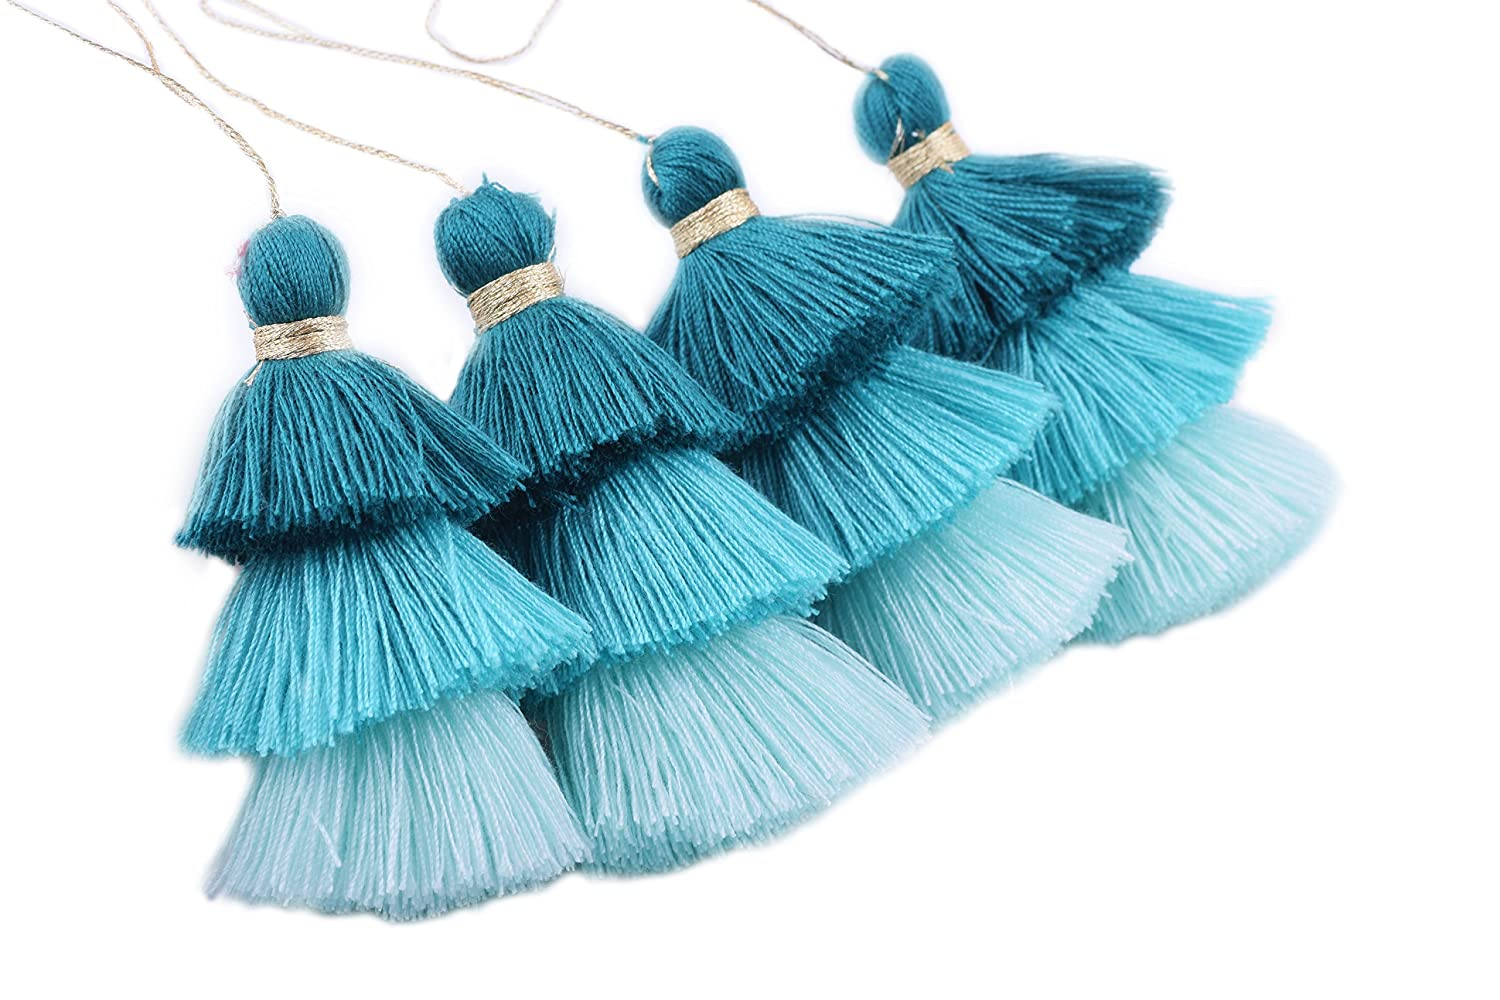 KONMAY 4pcs Tri-Layered Tassels with Hanging Loop for Jewelry Making Clothing